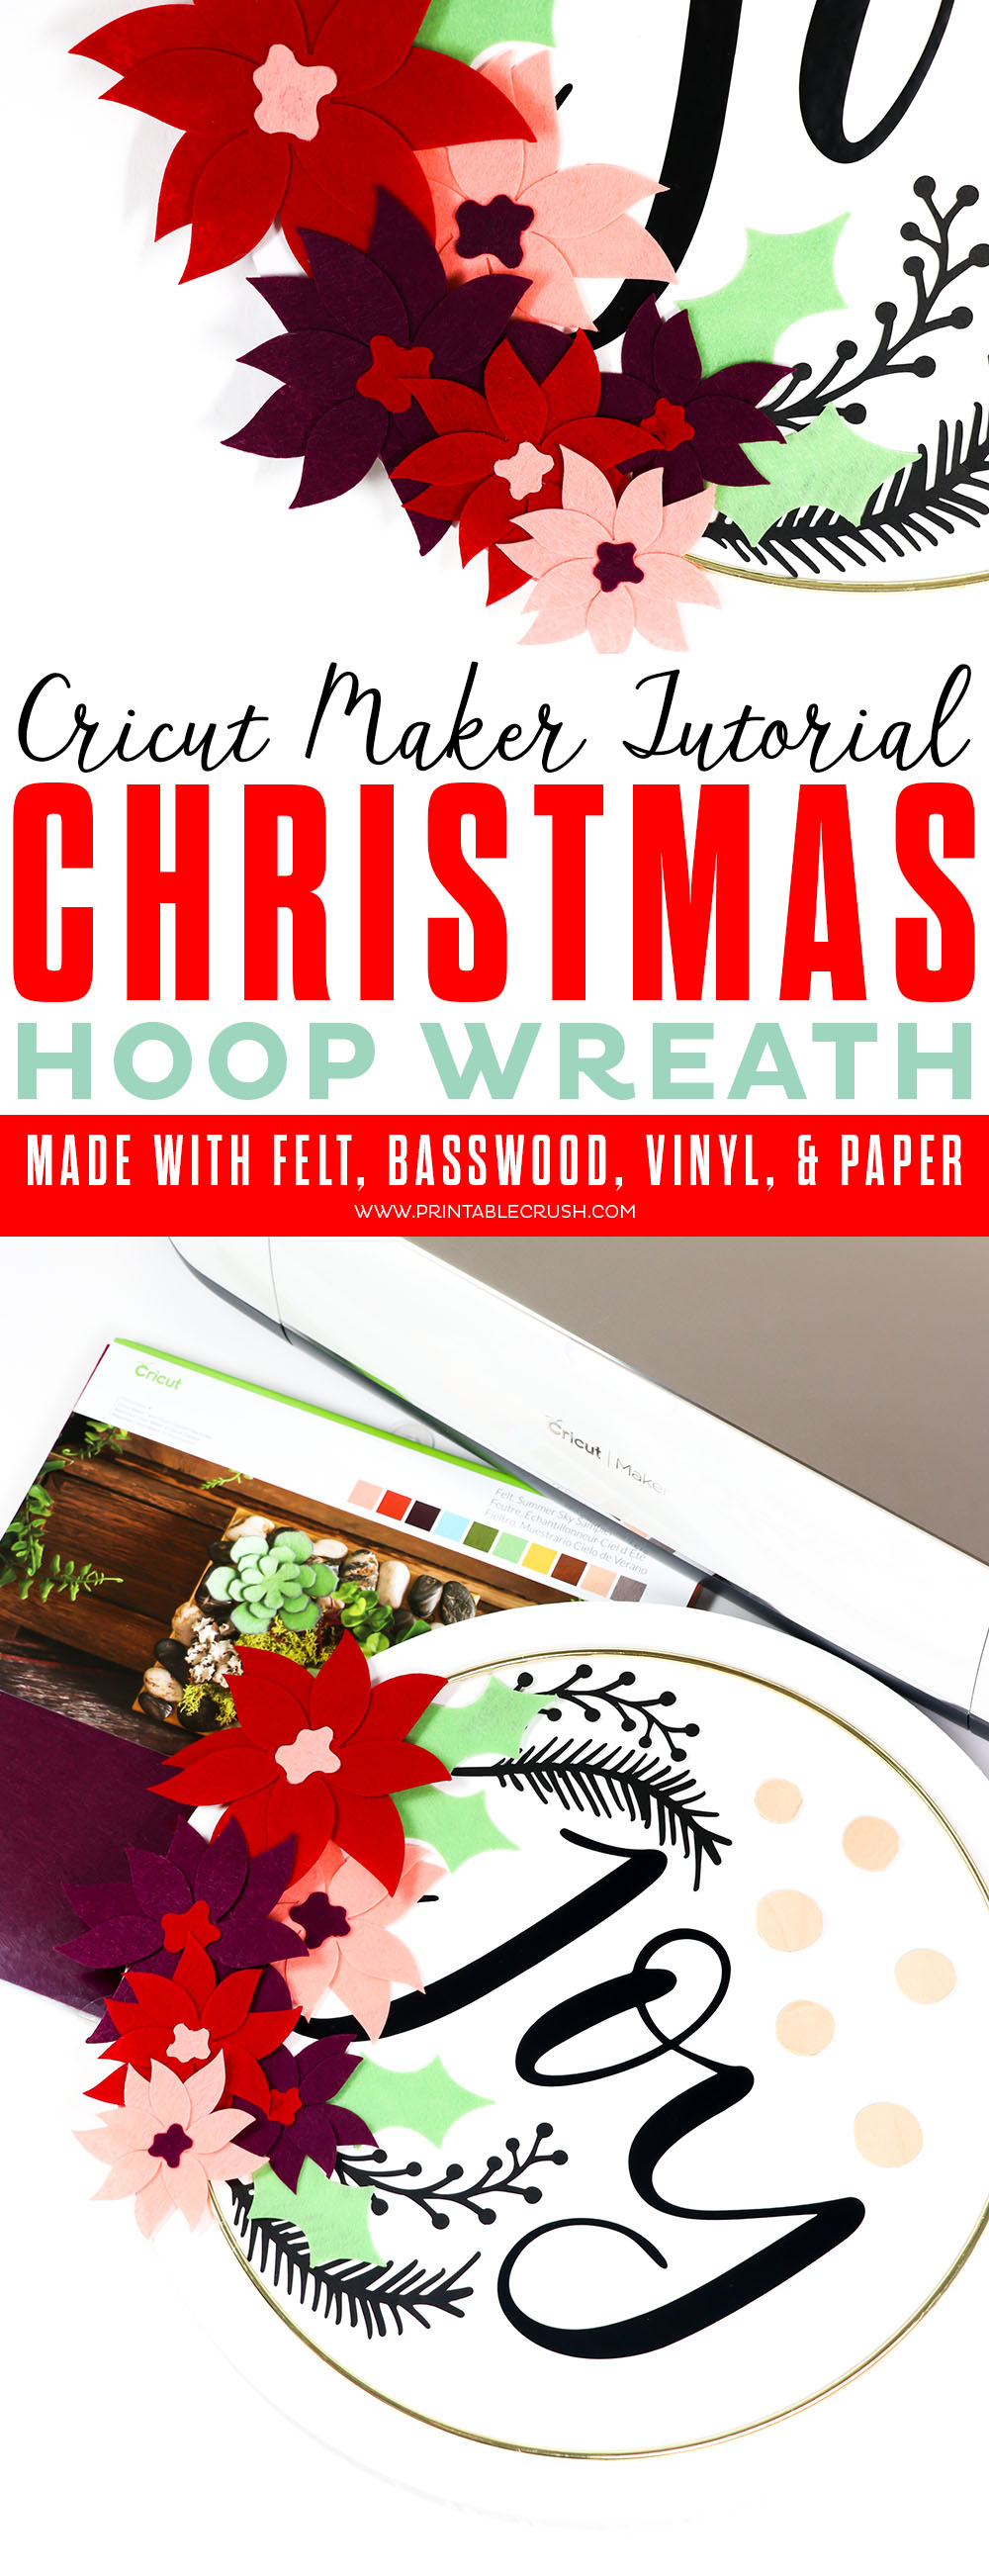 Check out this Cricut Maker Tutorial for a Canvas Christmas Hoop Wreath! I used felt, vinyl, paper, and even basswood for this gorgeous canvas wreath.